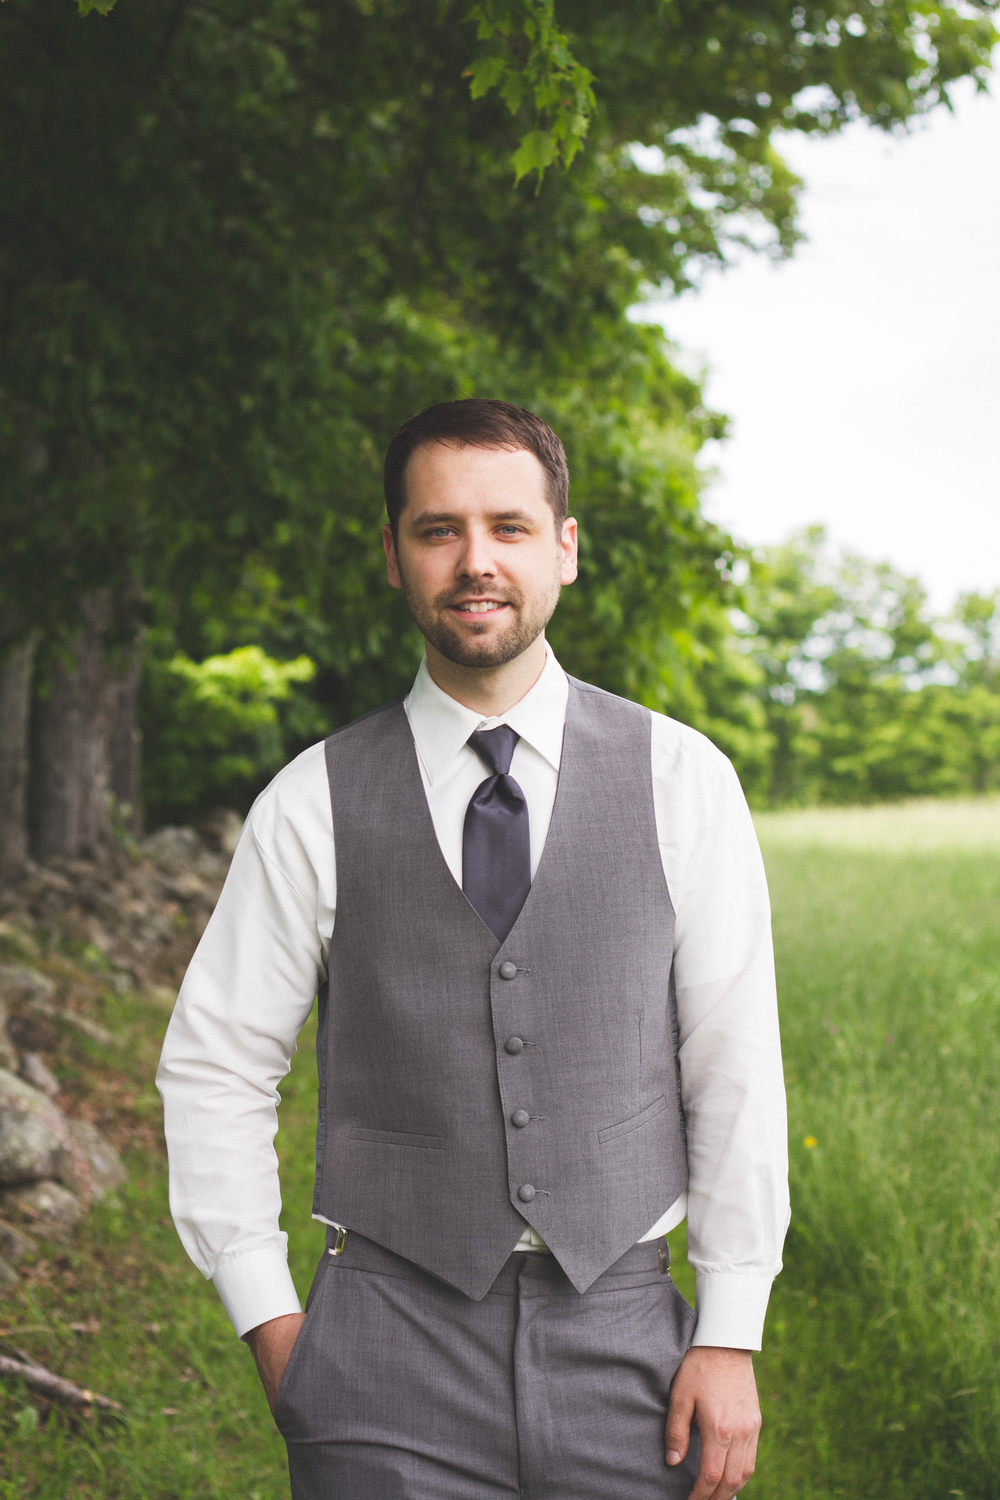 Groom at Bliss Farm in Granville, Massachusetts. Sweet Alice Photography.